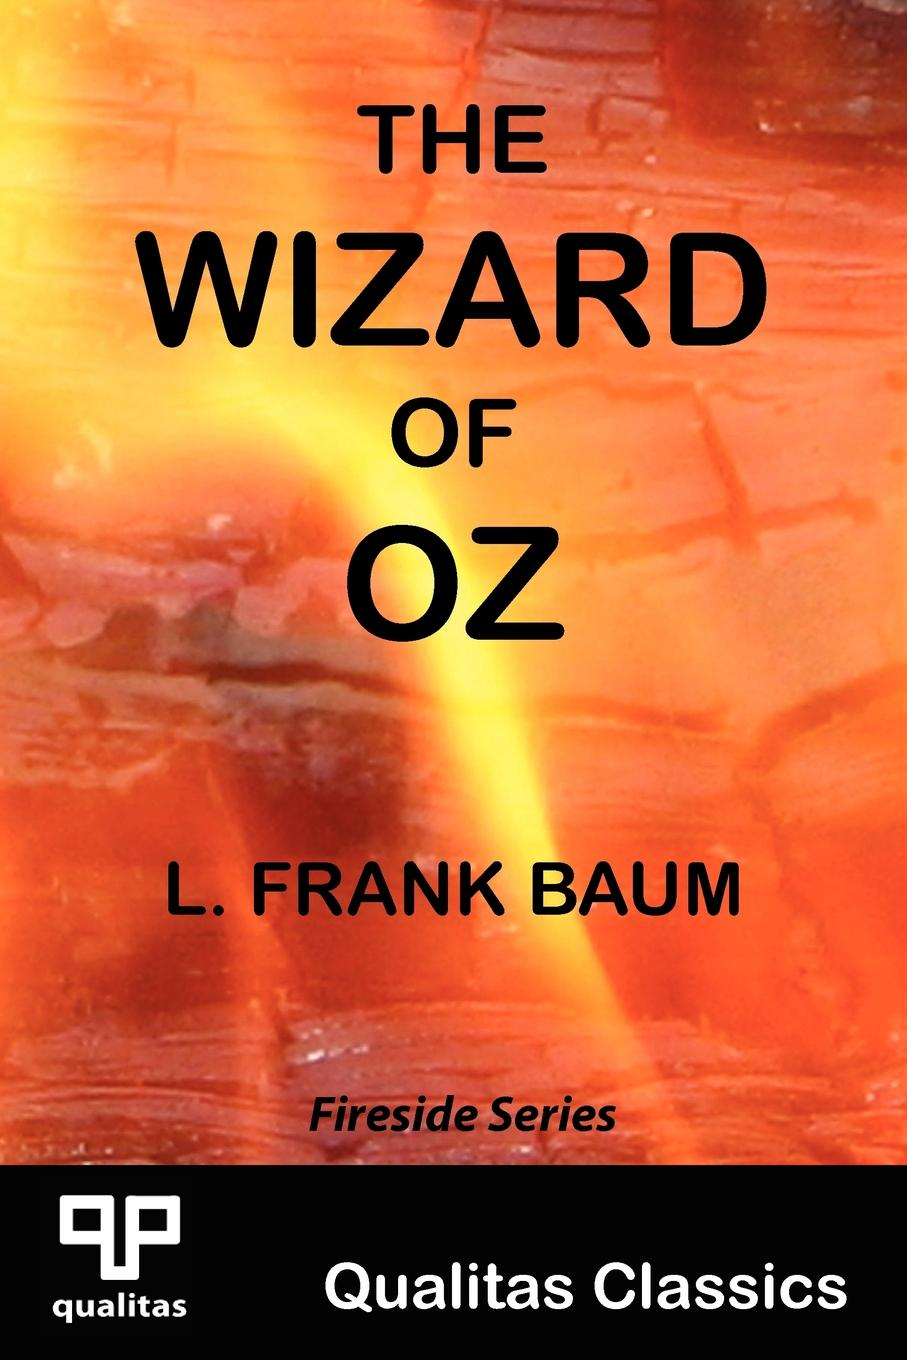 L. Frank Baum The Wizard of Oz (Qualitas Classics) the wizard of oz books wholesale genuine books for adolescents life must read paper books for children